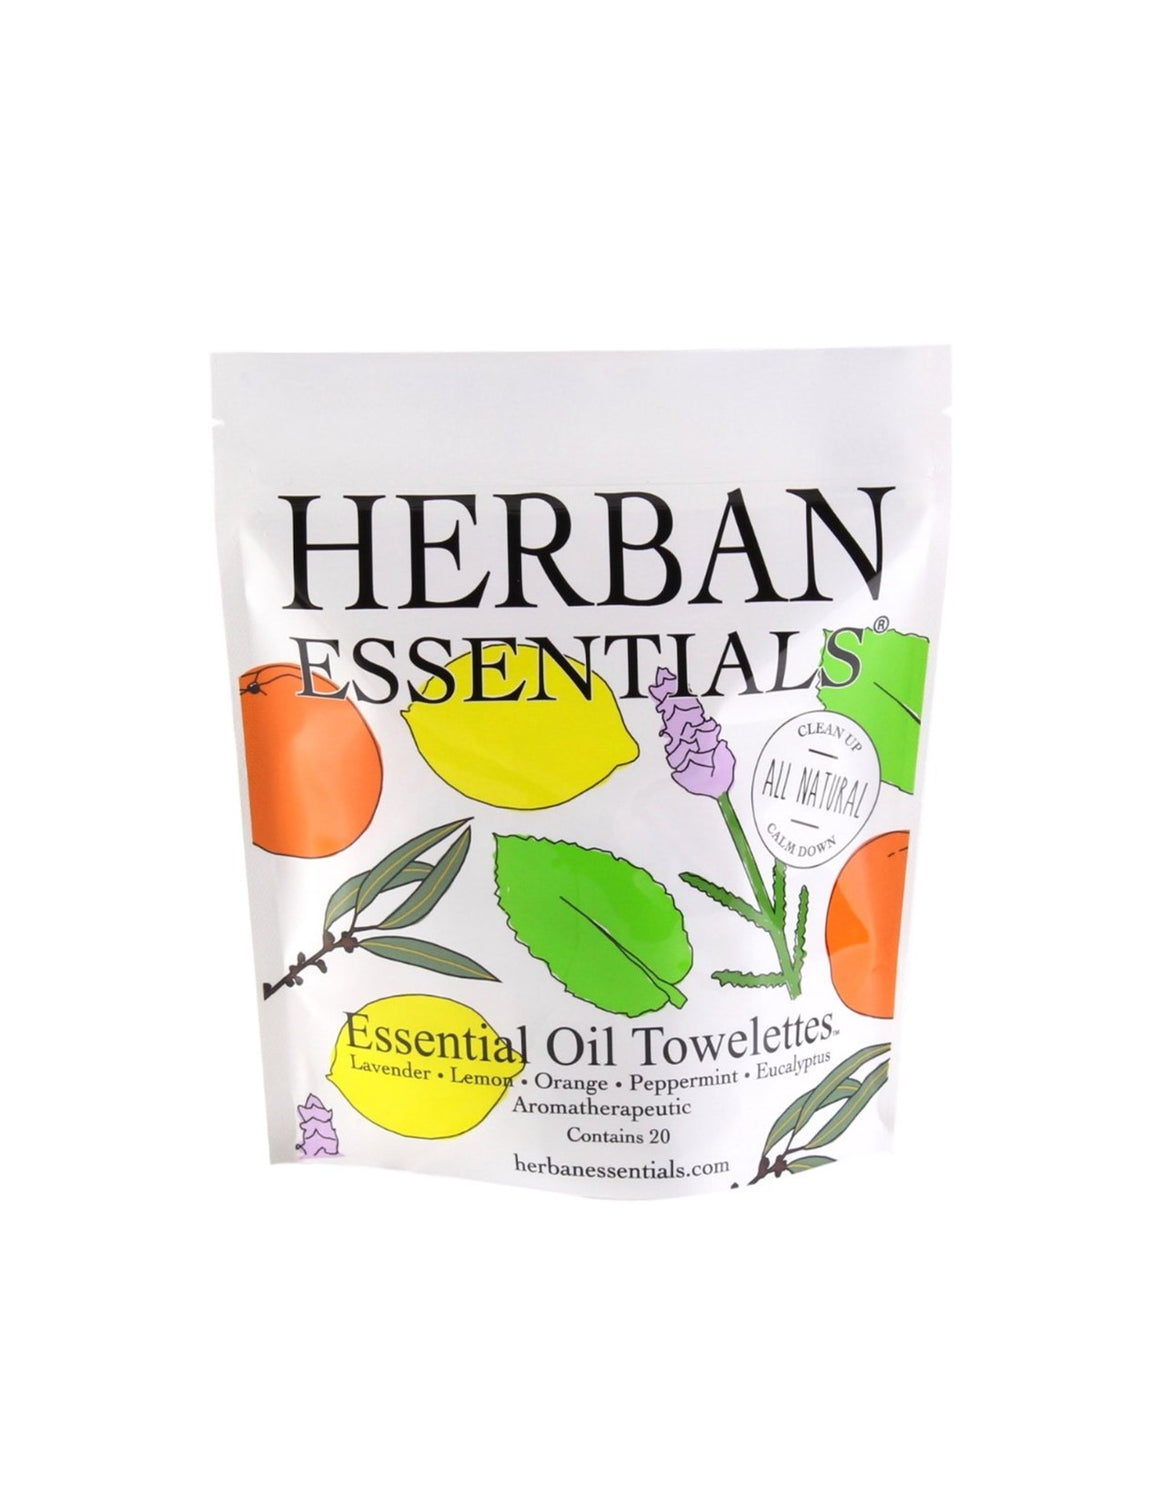 Herban Essentials - Assorted Essential Oil Towelettes